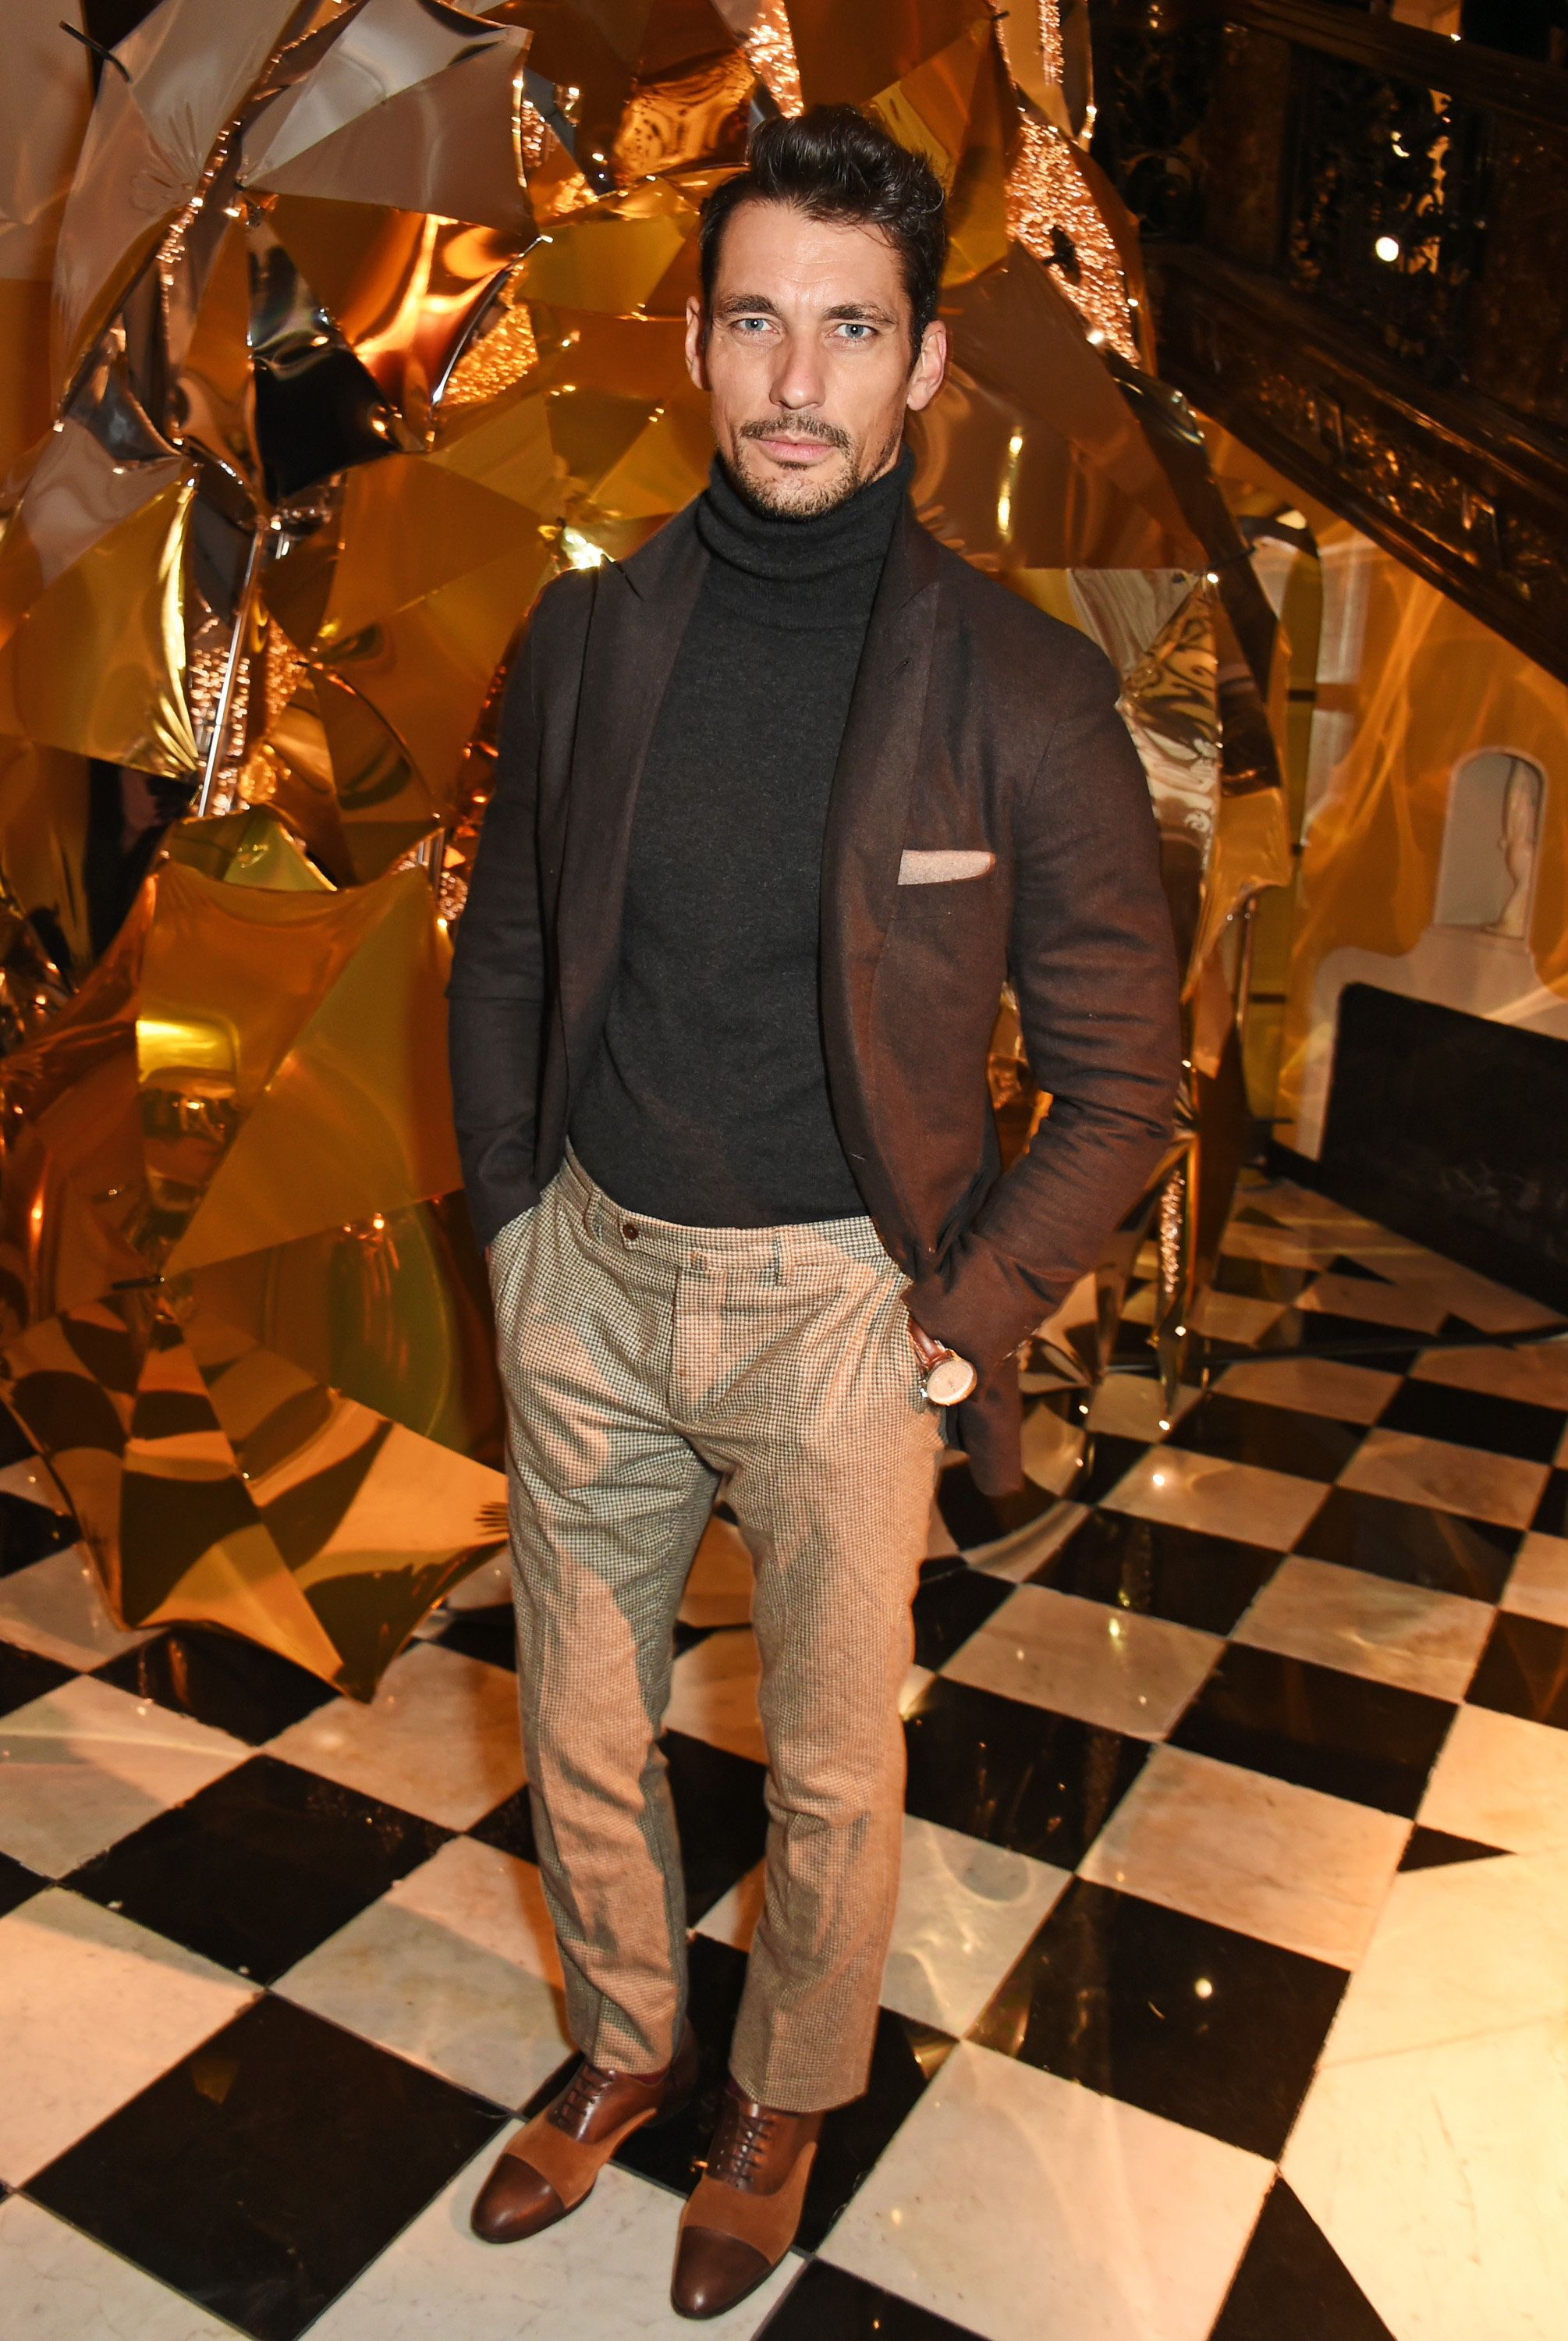 Company Christmas Party Outfit Ideas Part - 47: David Gandy